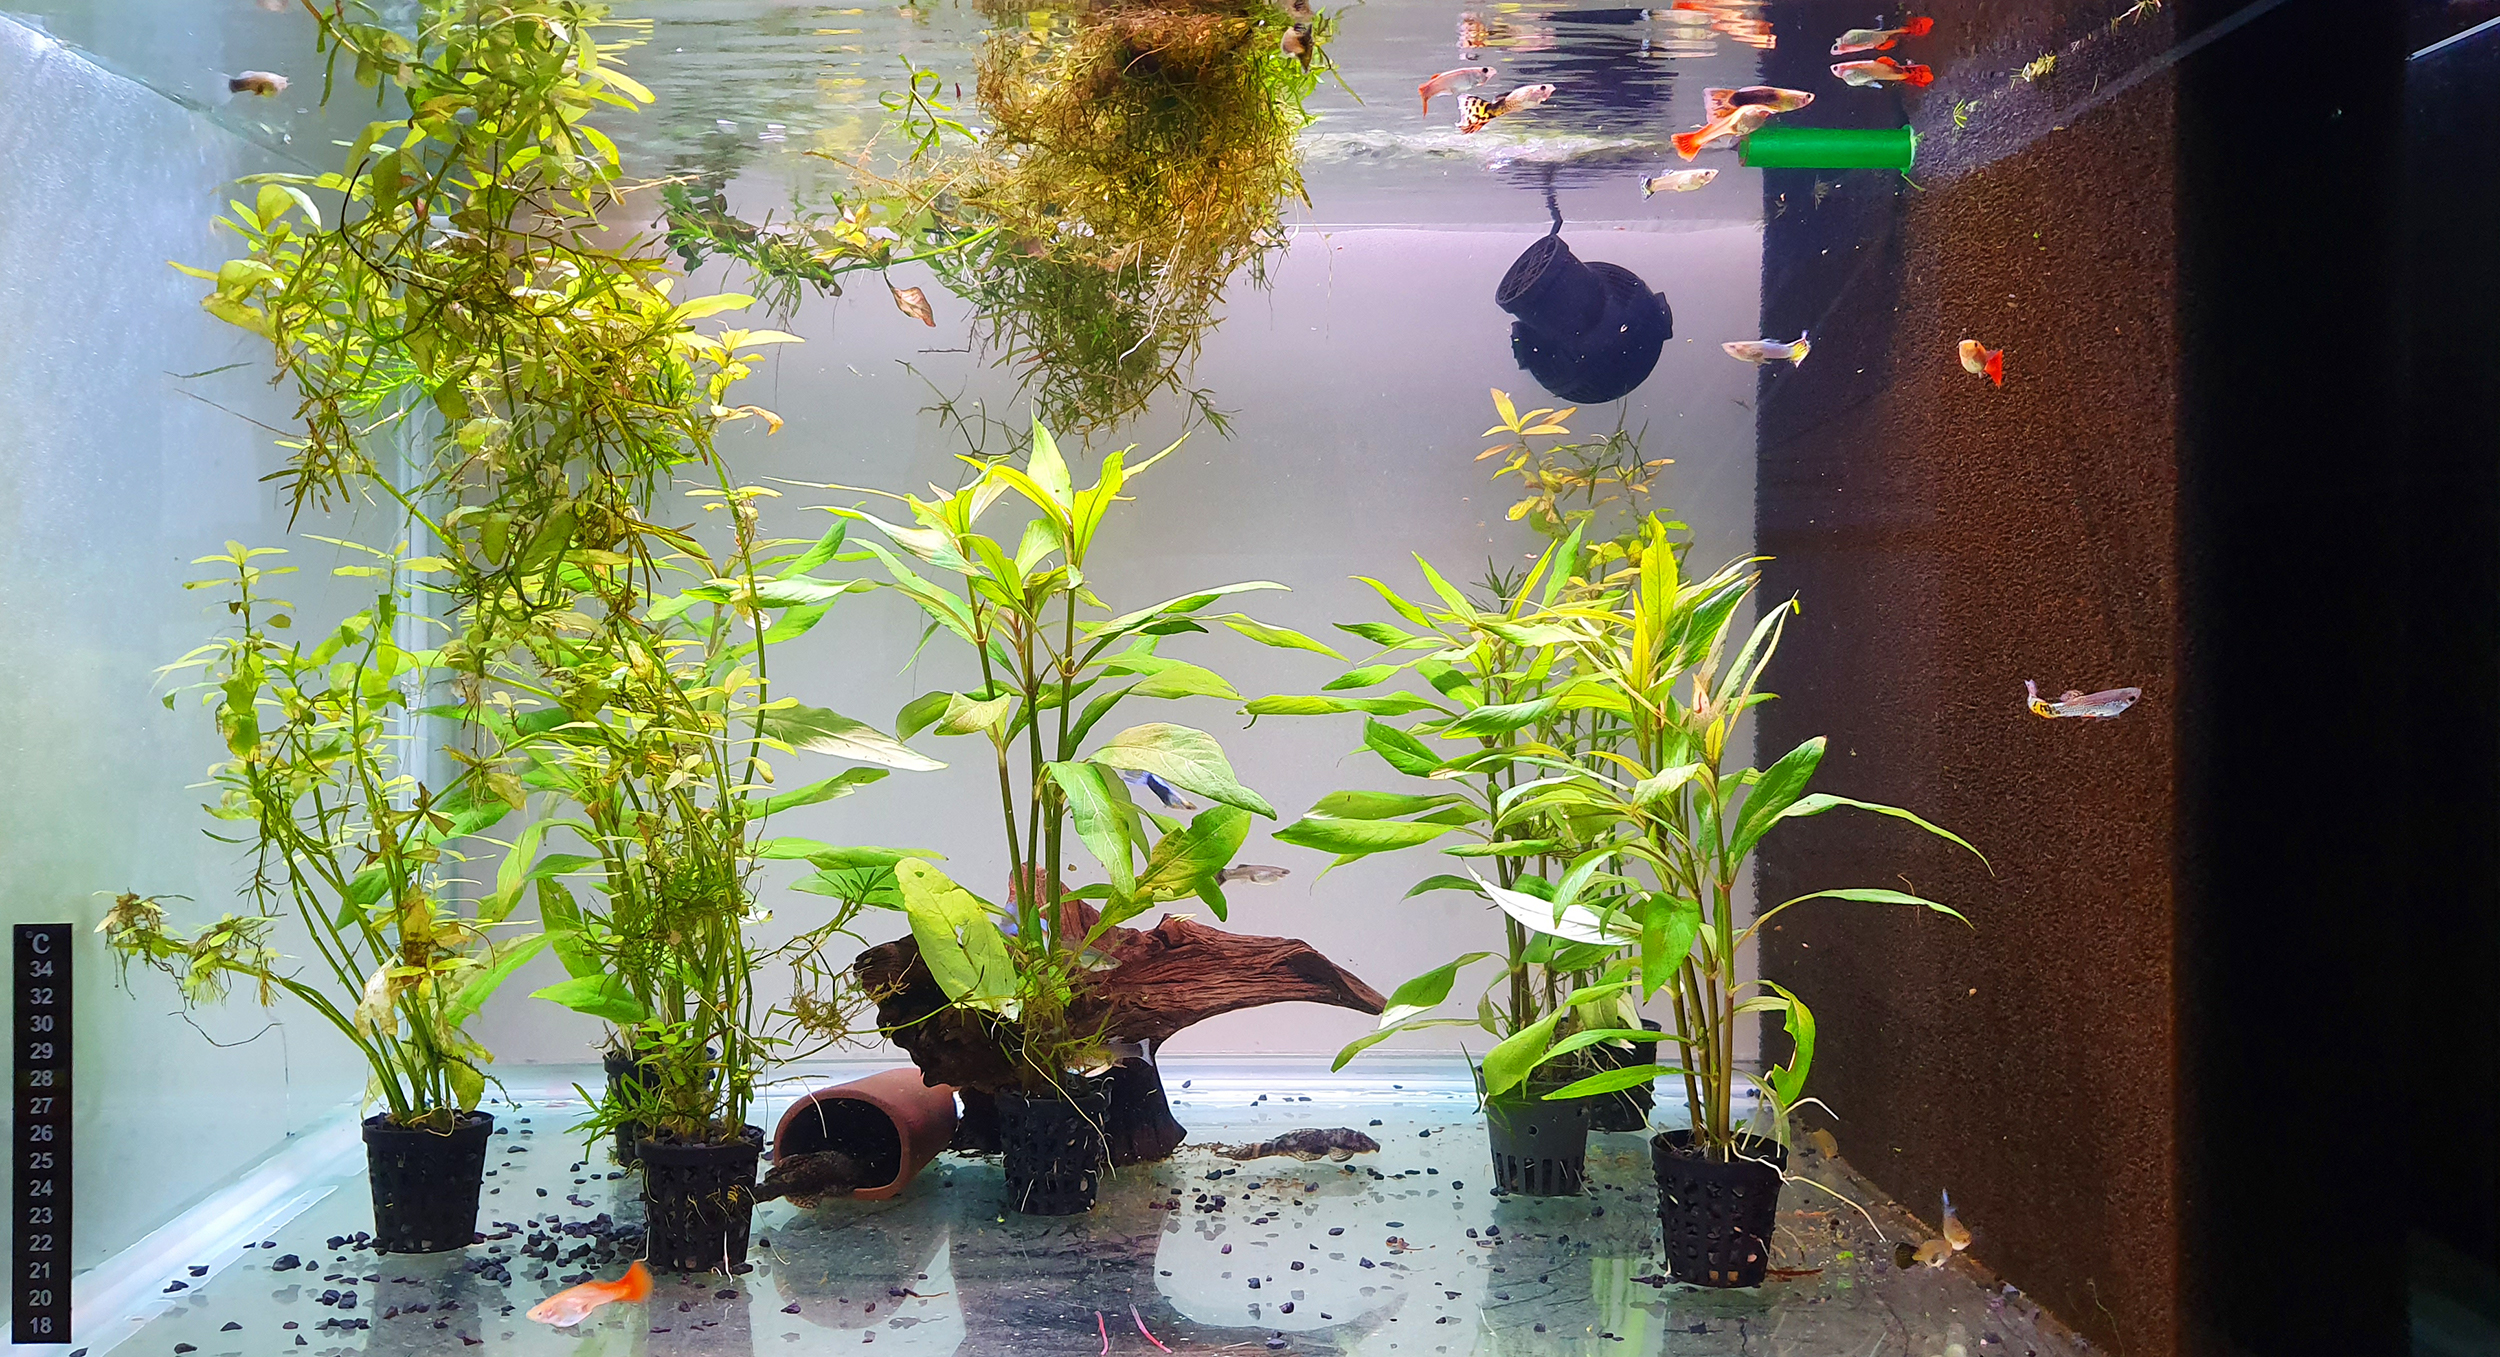 Akvarist Tips Inspiration AkvarieSNAK - 27 - Jan 255 liter - 20190821_173634